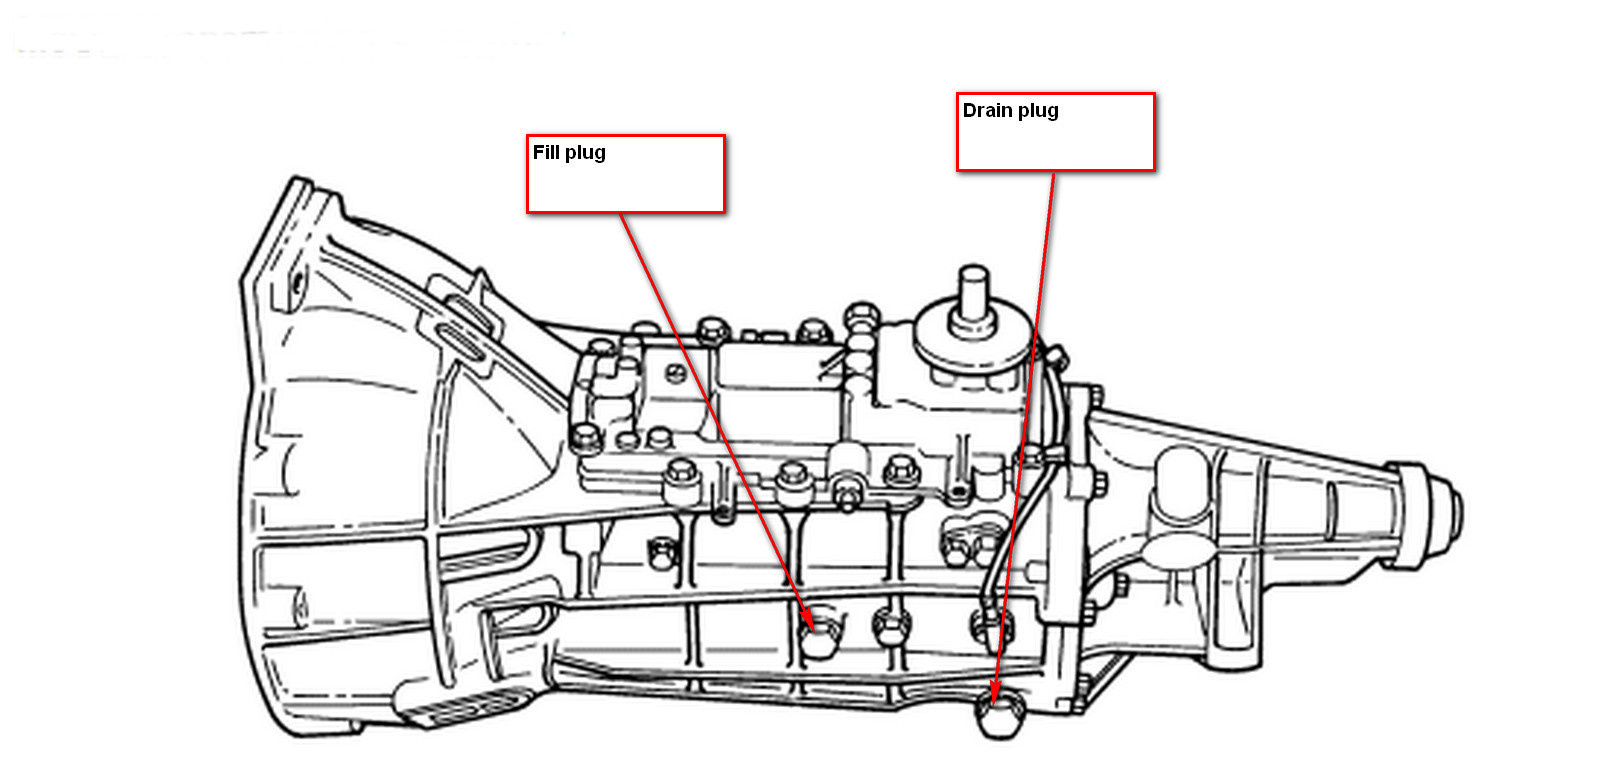 2000 ford ranger wiring diagram additionally 1992 ford